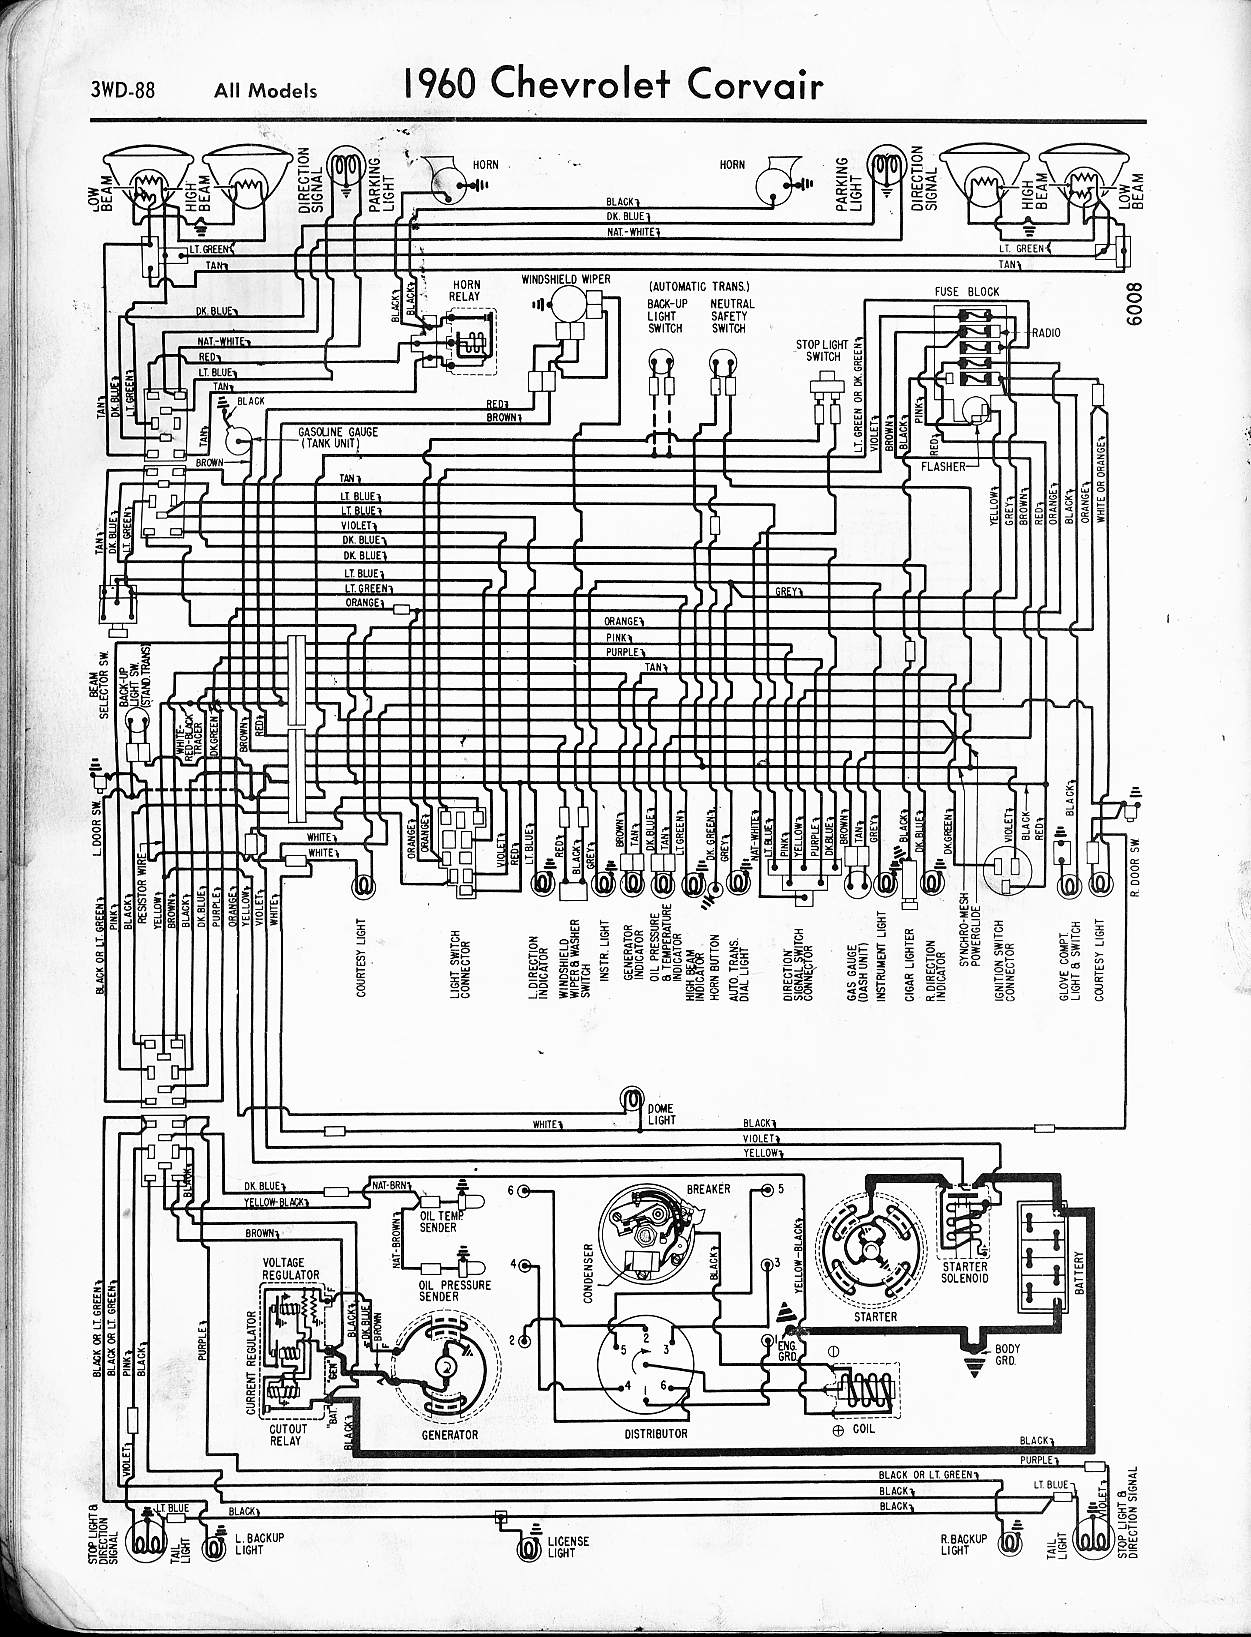 MWireChev60_3WD 088 57 65 chevy wiring diagrams 1960 corvette wiring diagram at aneh.co